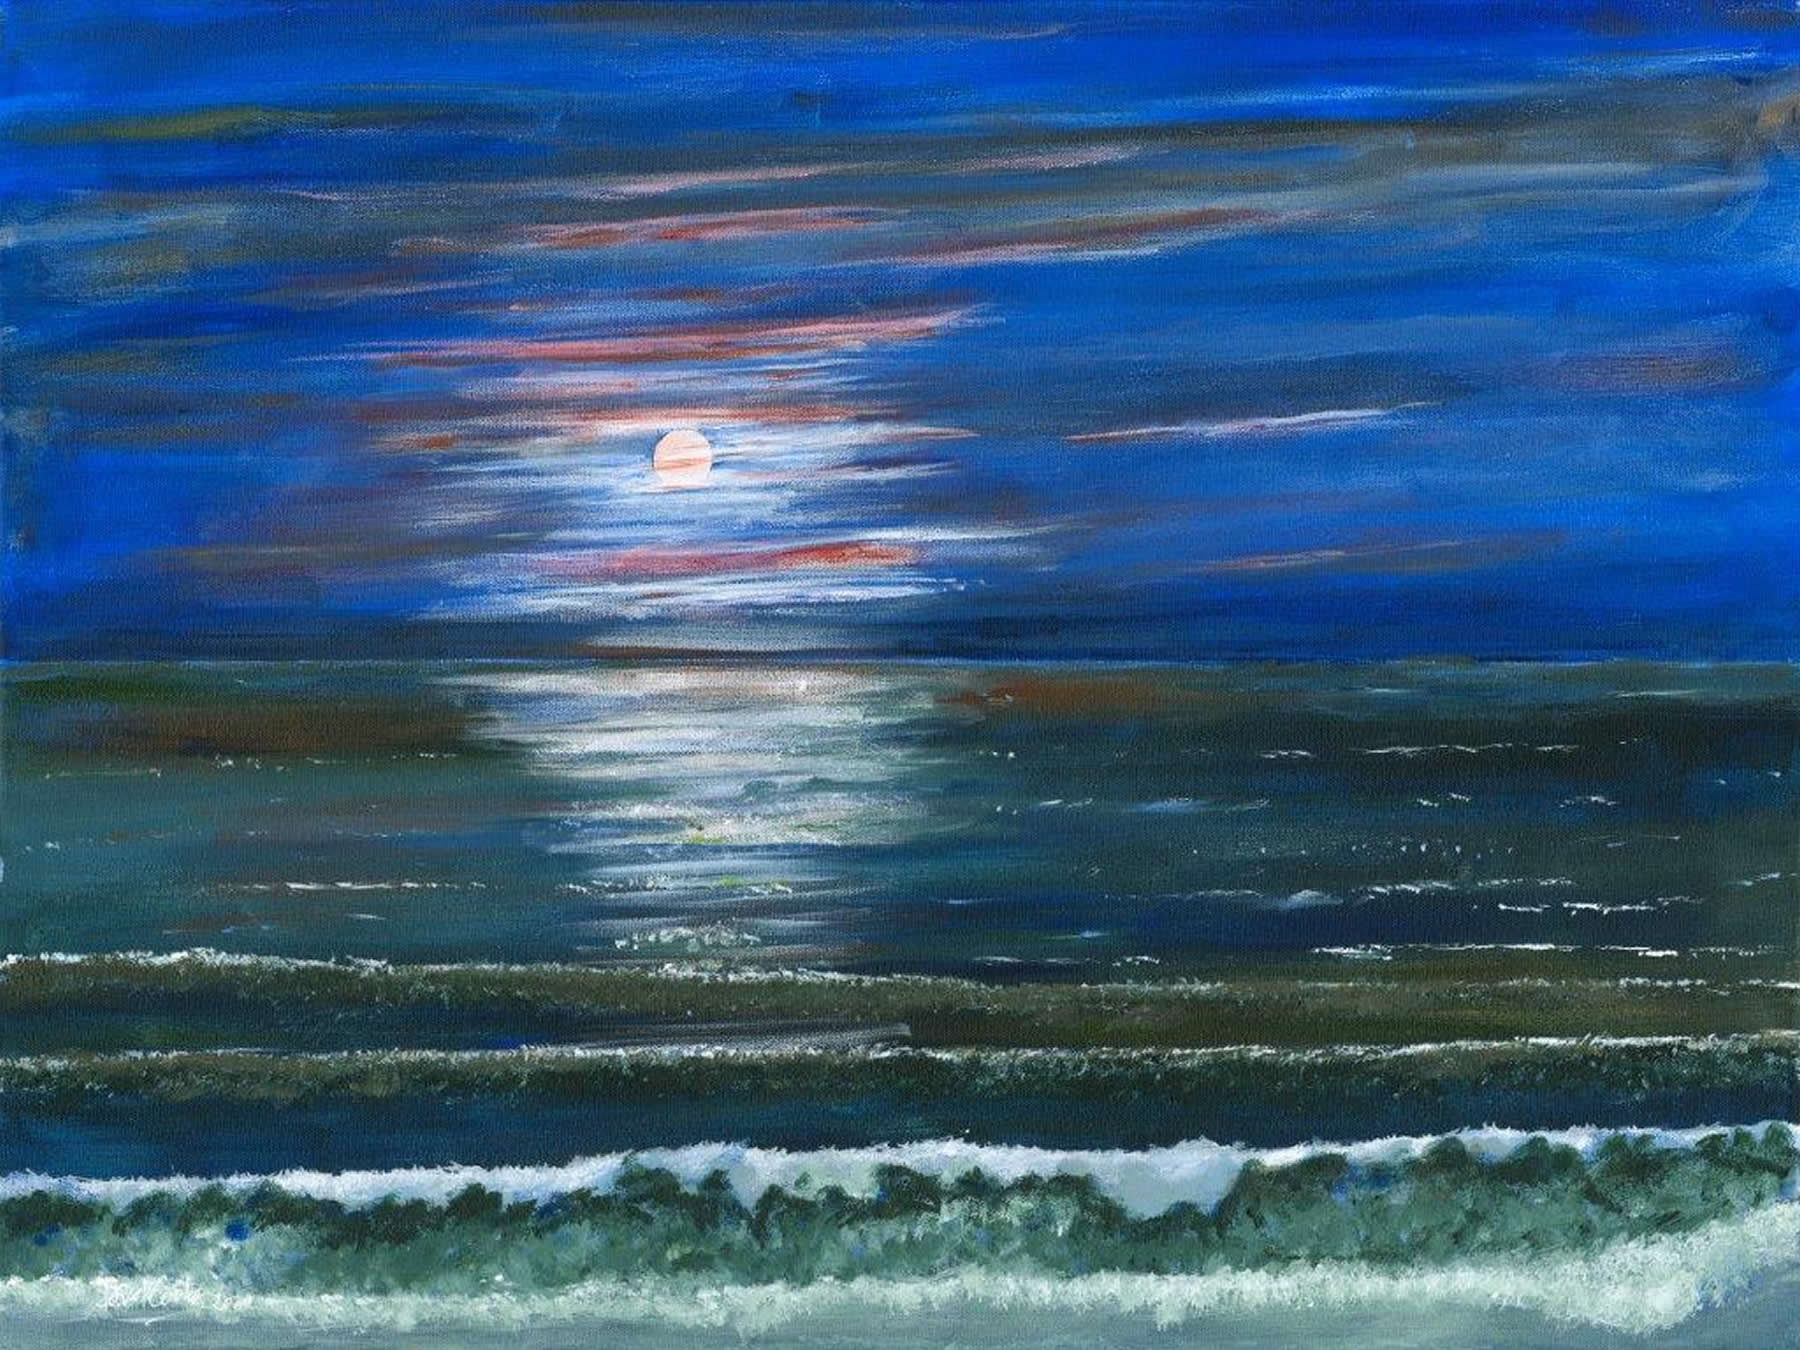 Art Gallery - Moonlight Fantasy - Painting of Sea at Night - Moon and dramatic sky